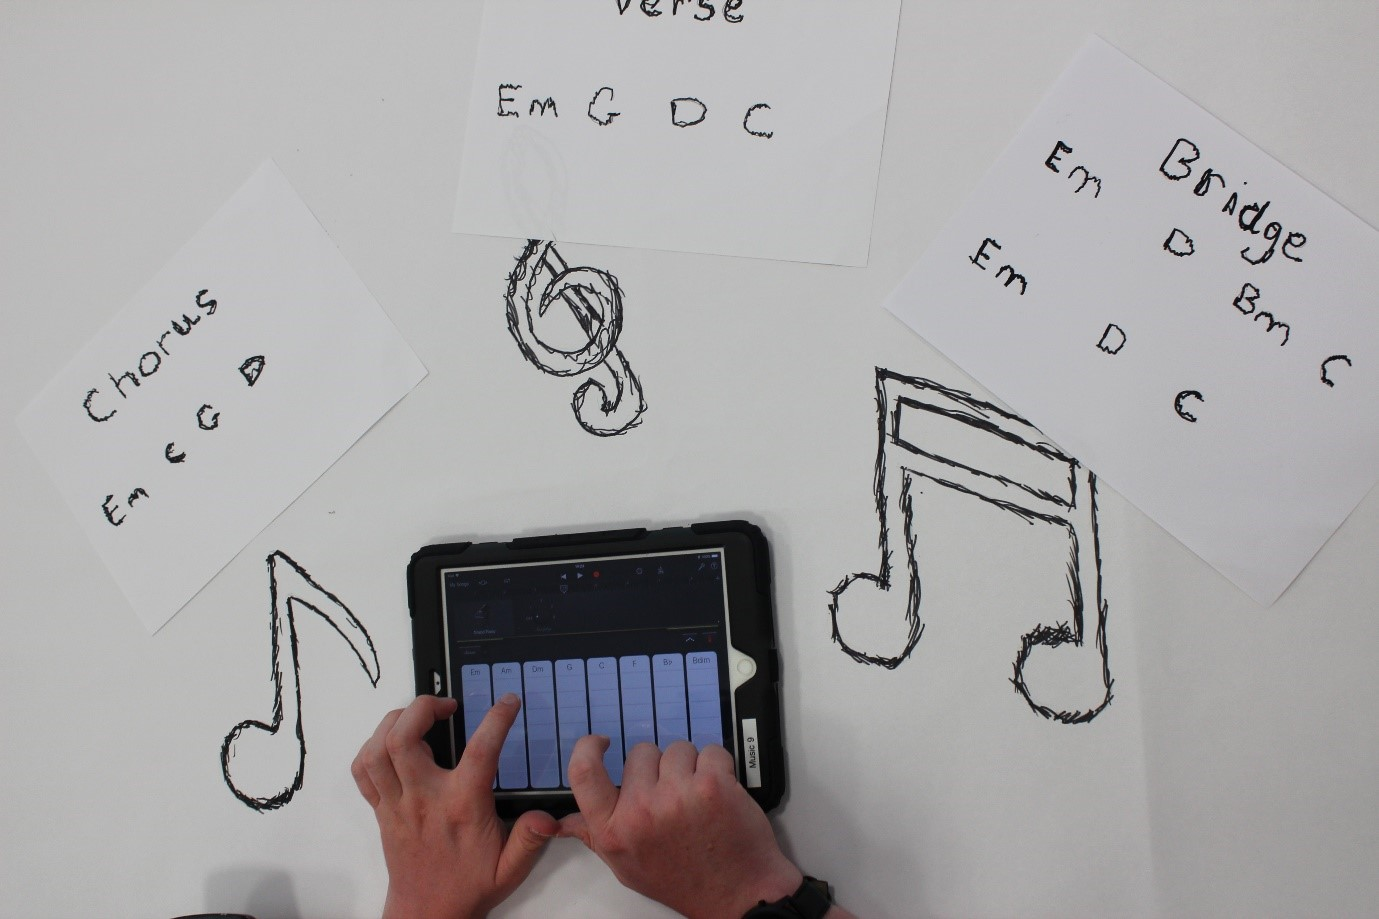 Two hands playing a small keyboard with musical notes surrounding the keyboard